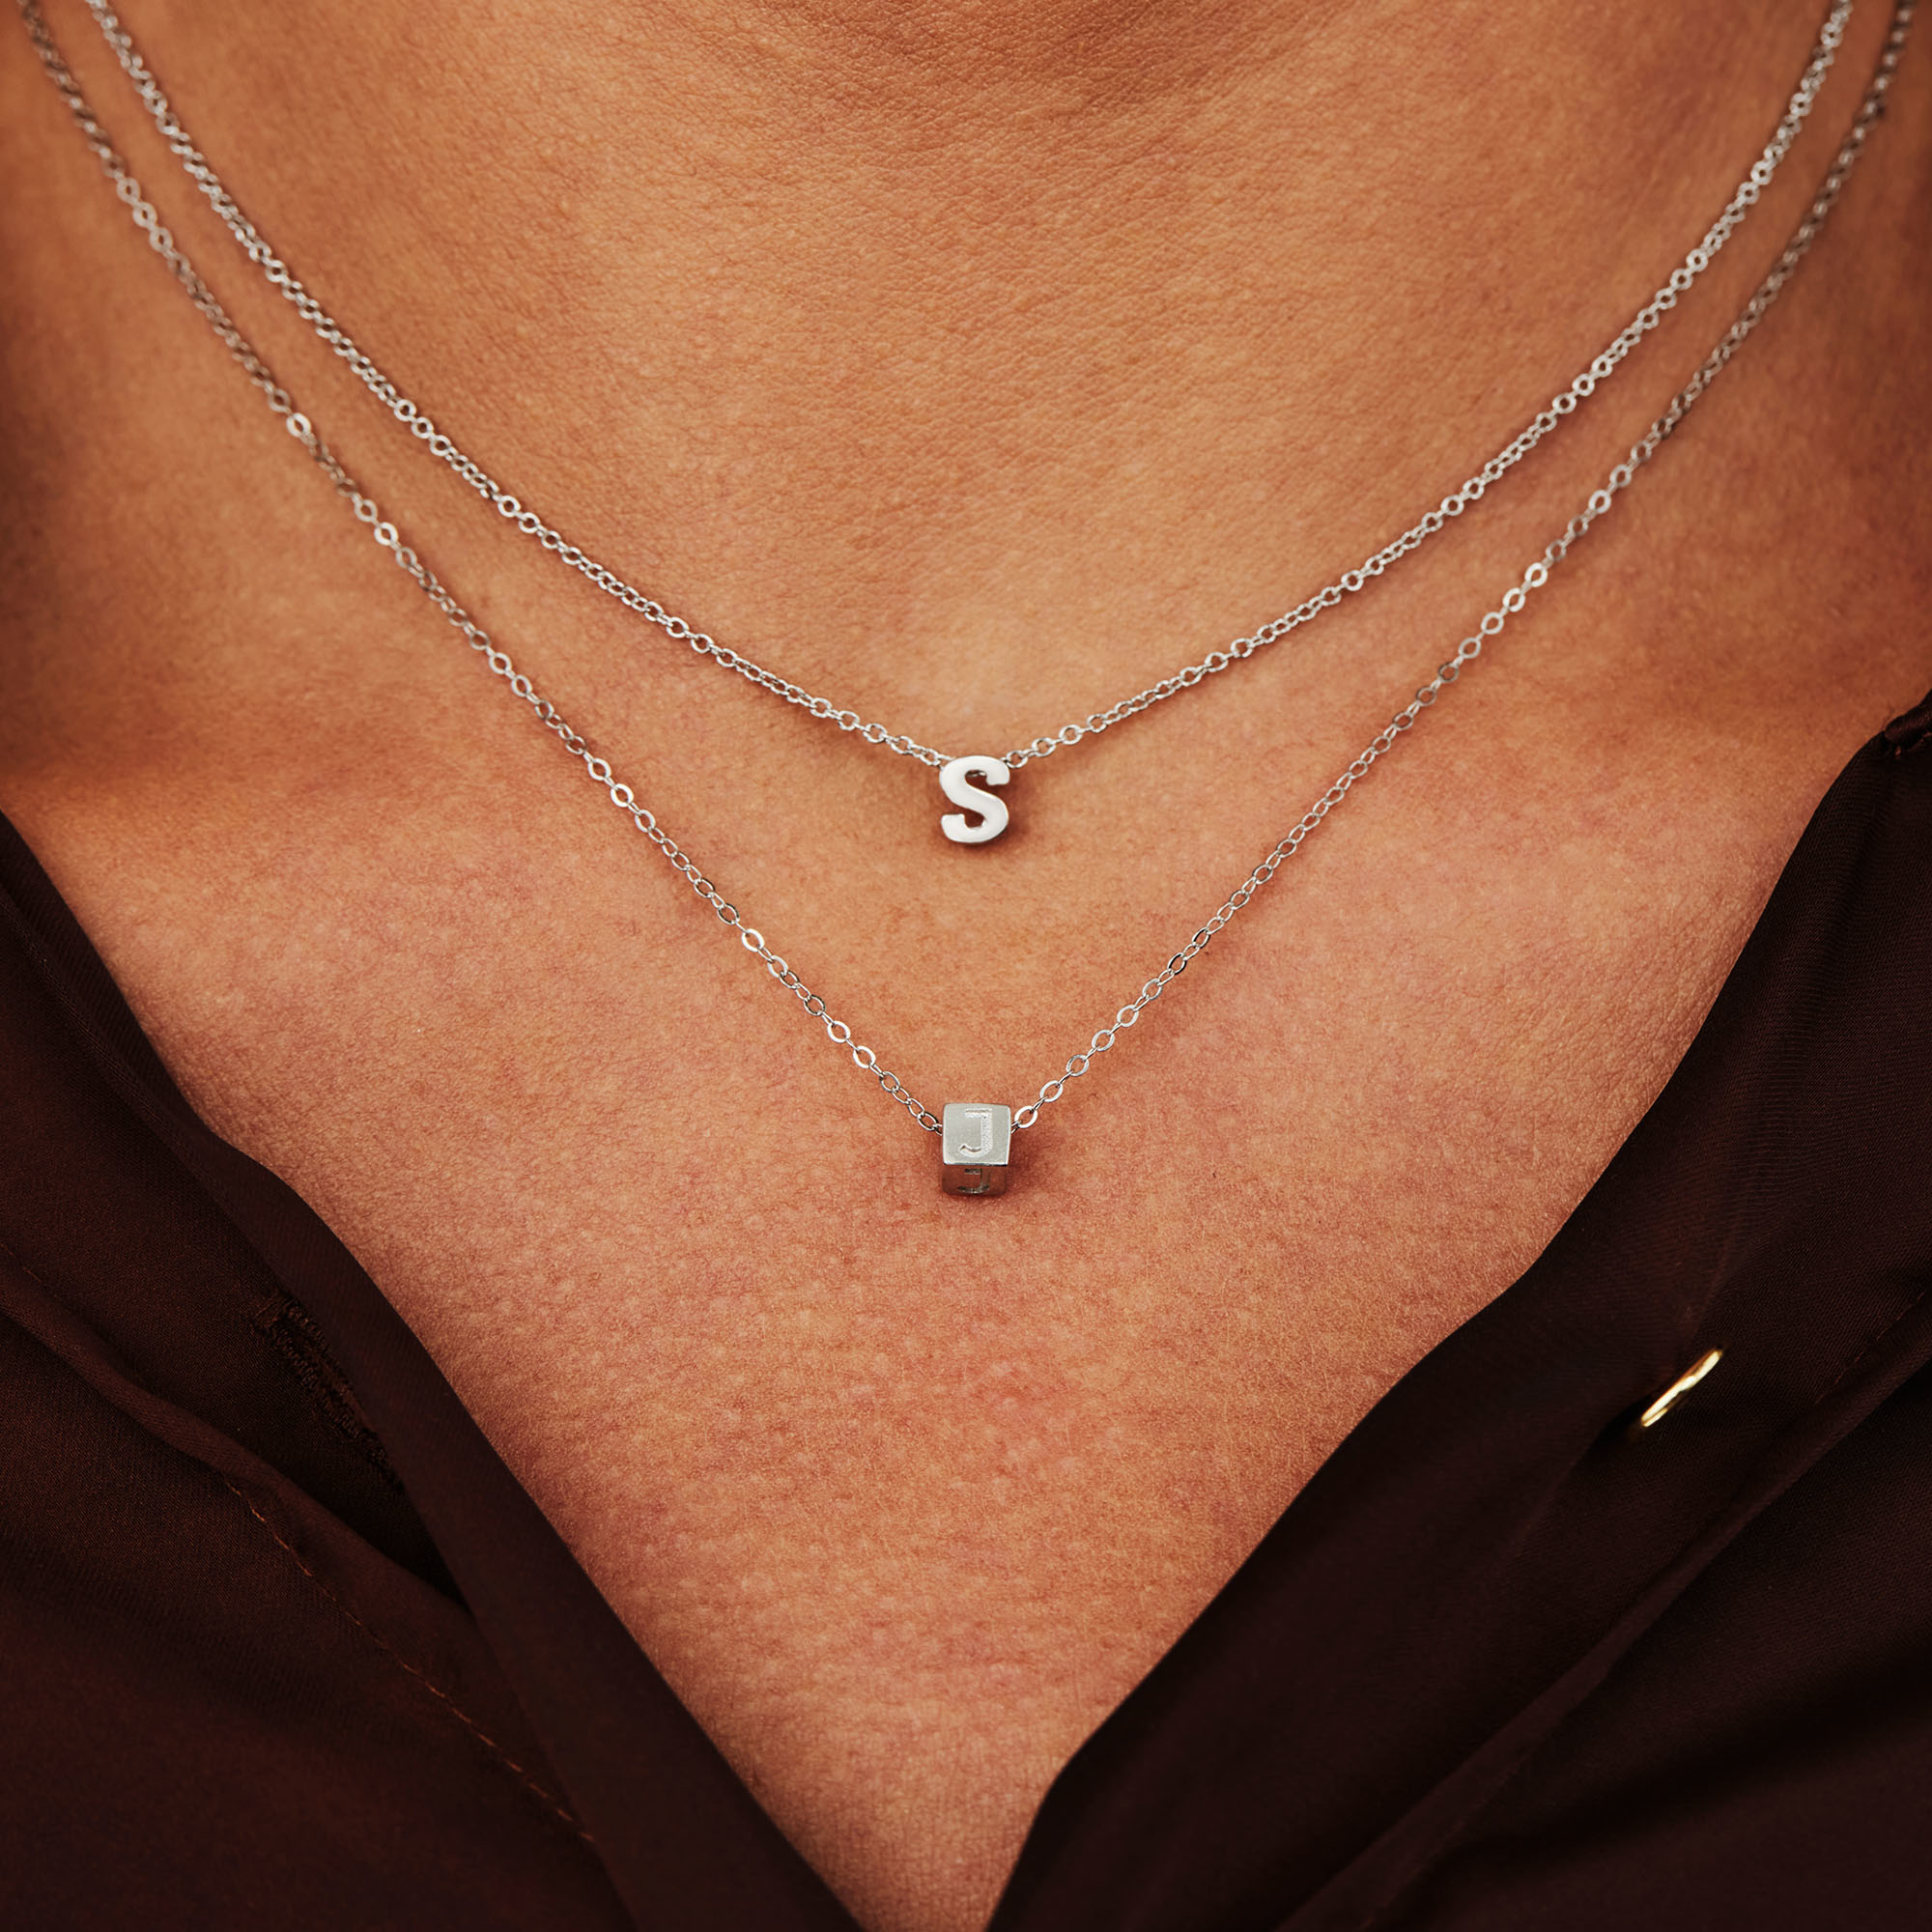 Selected Jewels Lynn Mikki 925 sterling silver initial necklace with letter